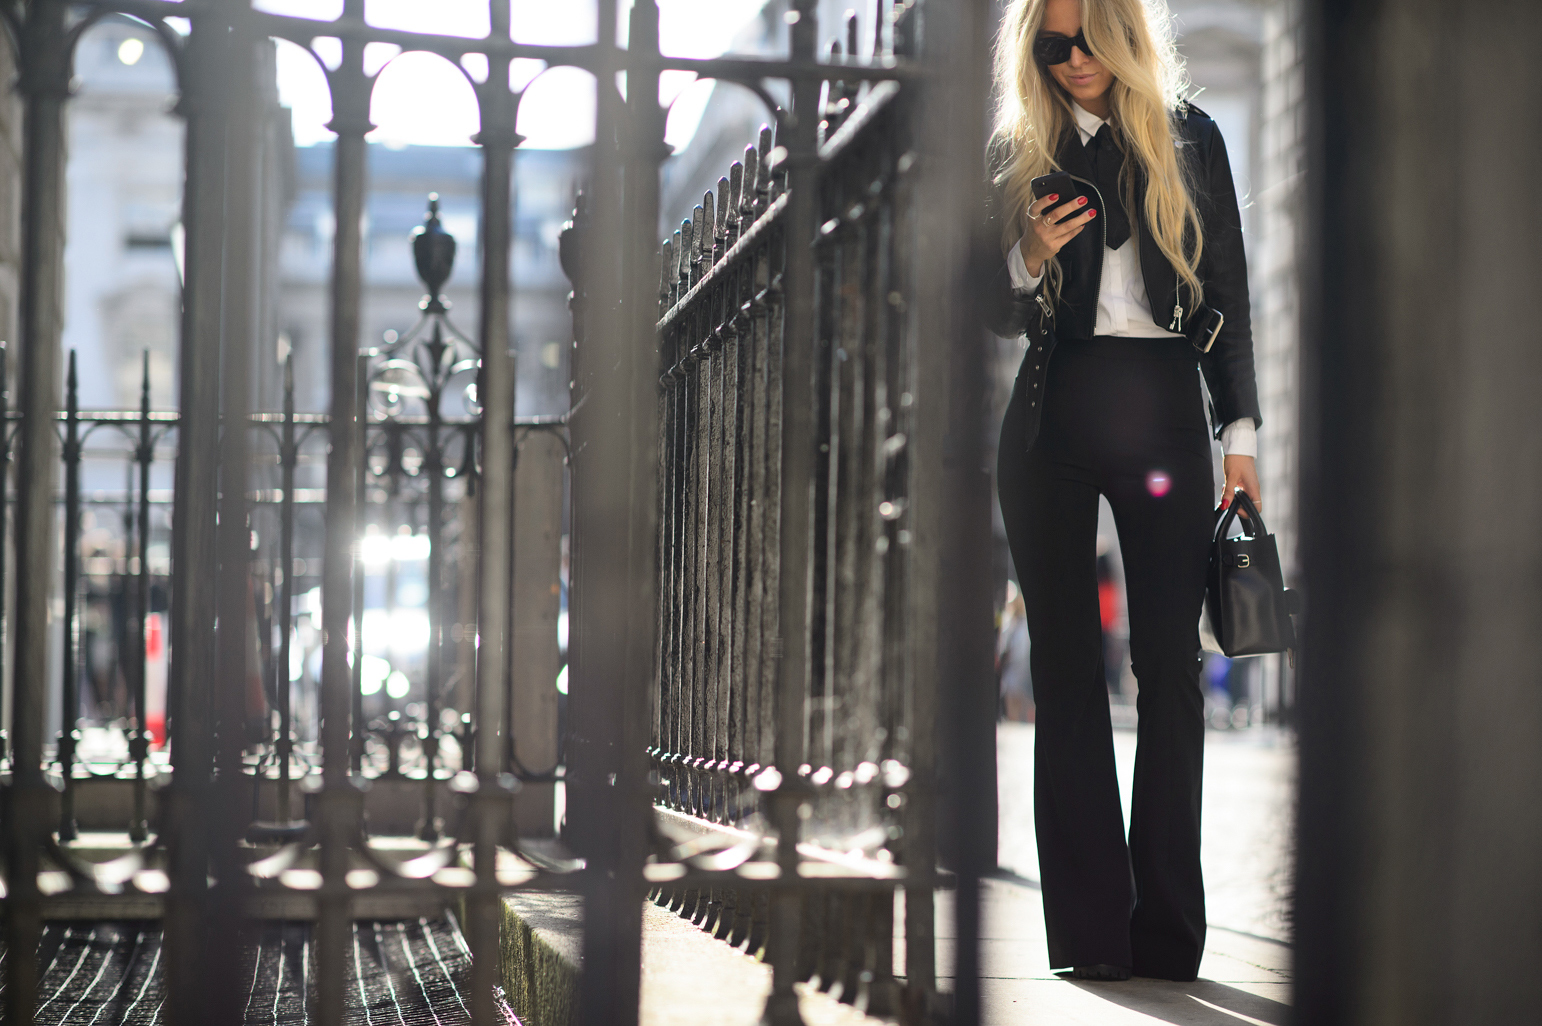 london-spring-2015-street-style-day-1-19-w-mag3